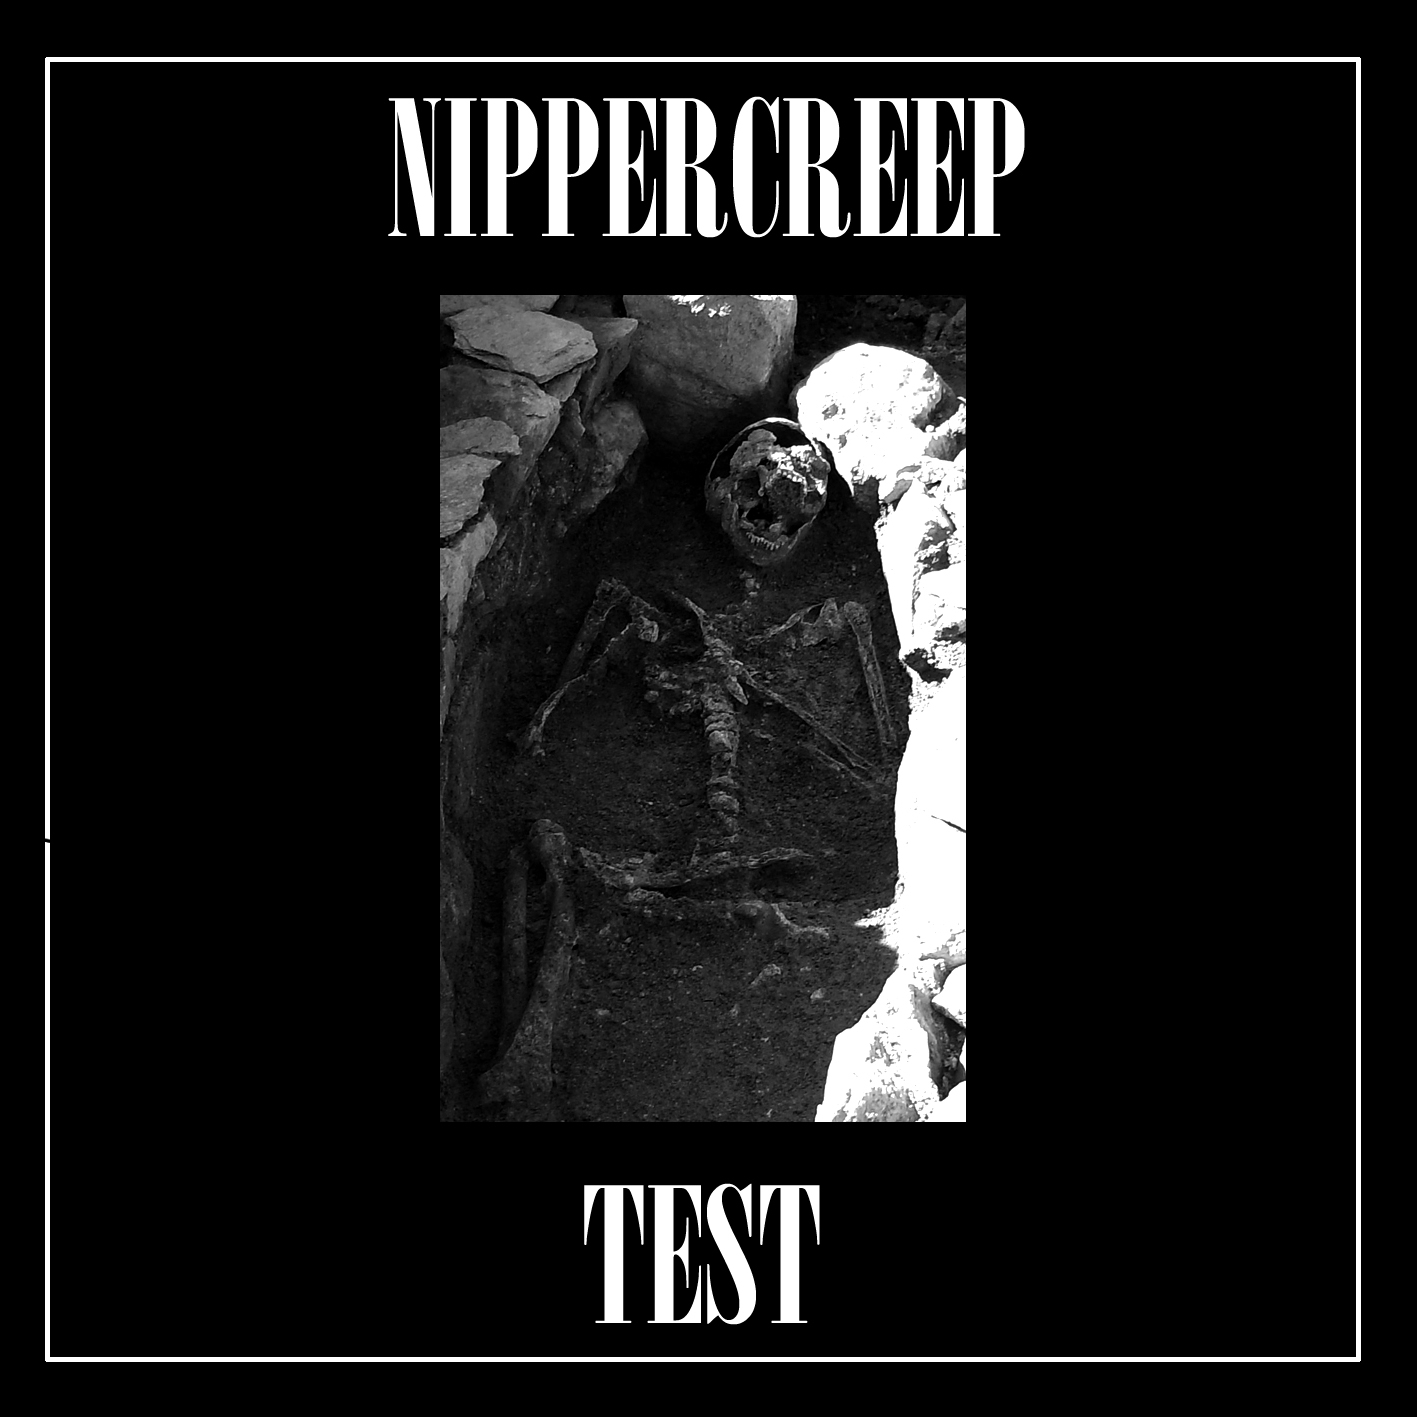 Nippercreep - Test